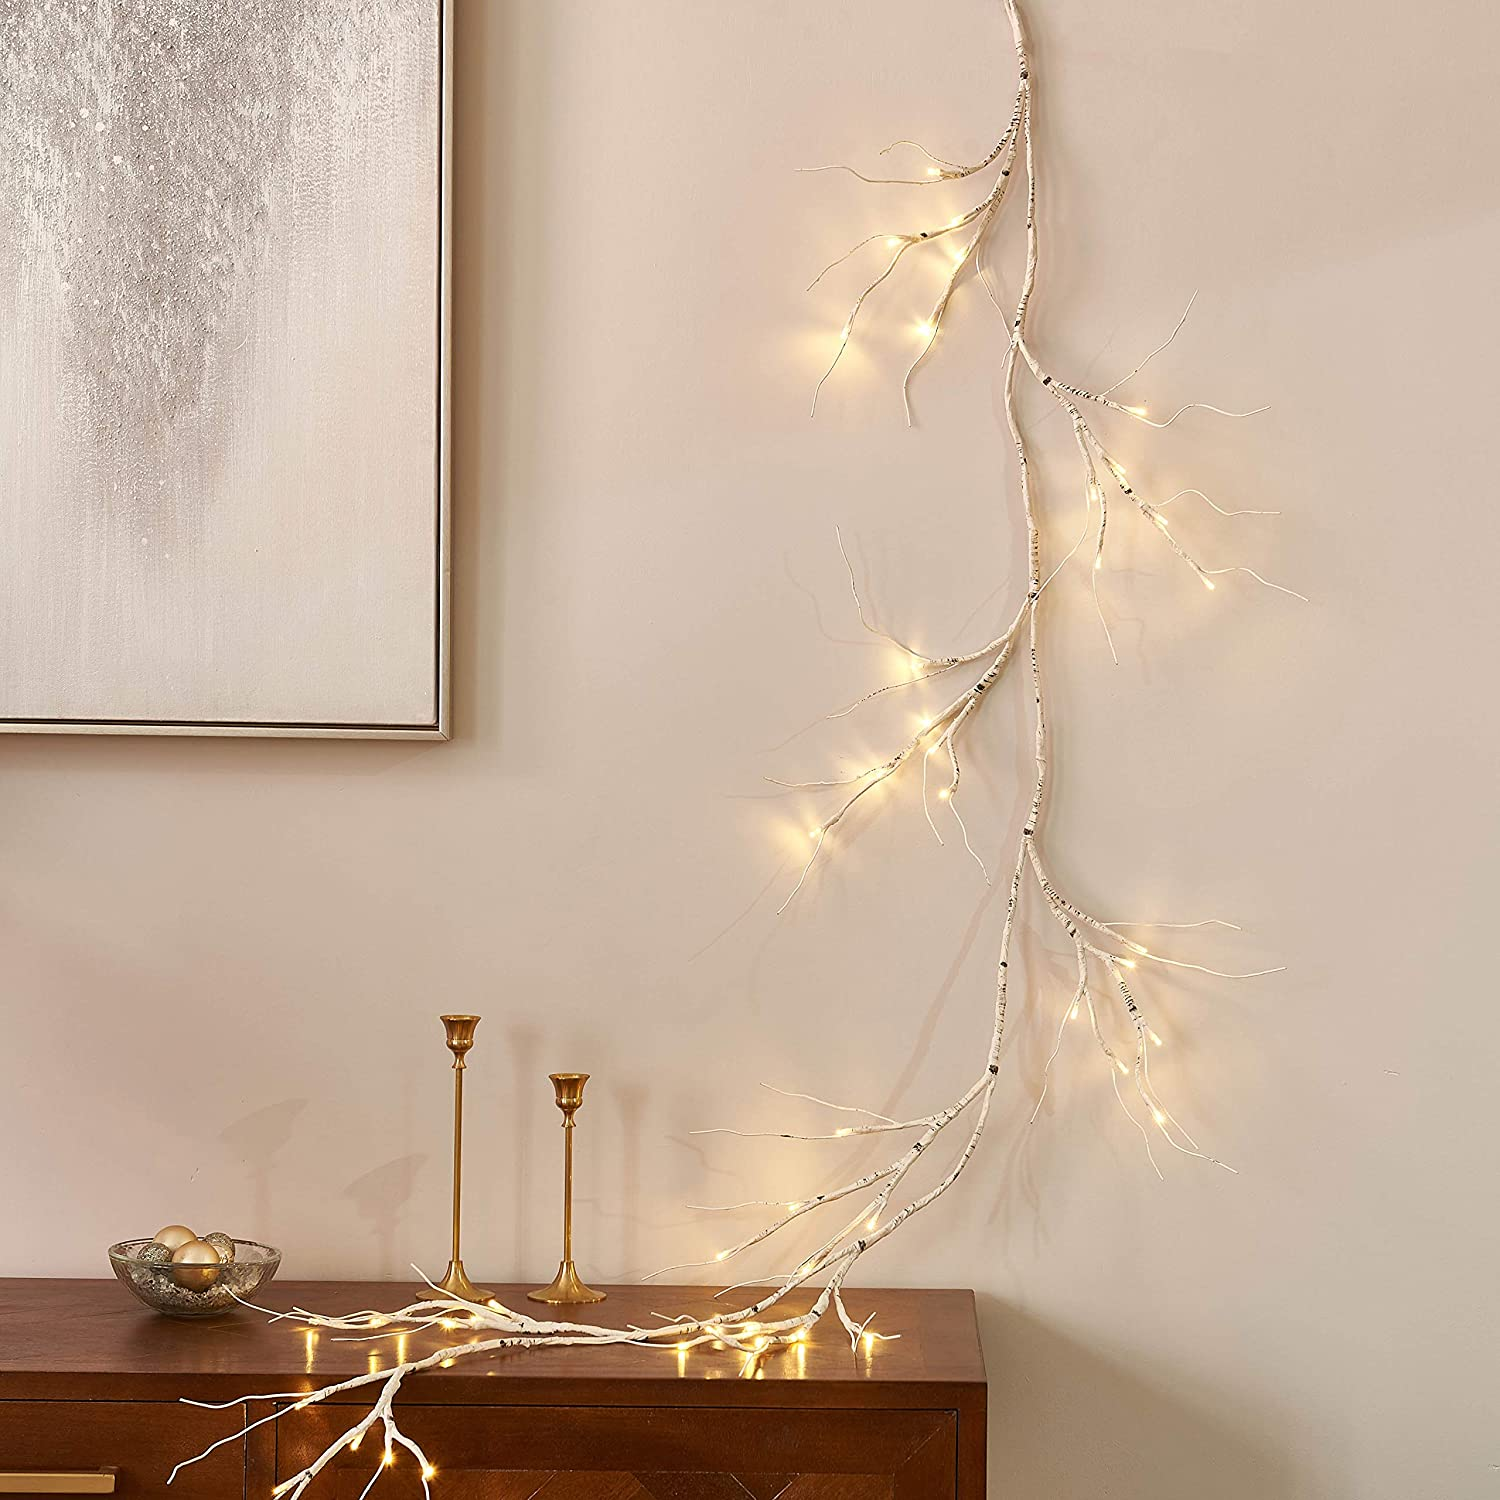 LITBLOOM Lighted Eucalyptus Garland 6FT 48 LED Battery Operated with Timer Artificial Greenery Twig Vine Lights for Wedding Party Christmas Holiday Decoration